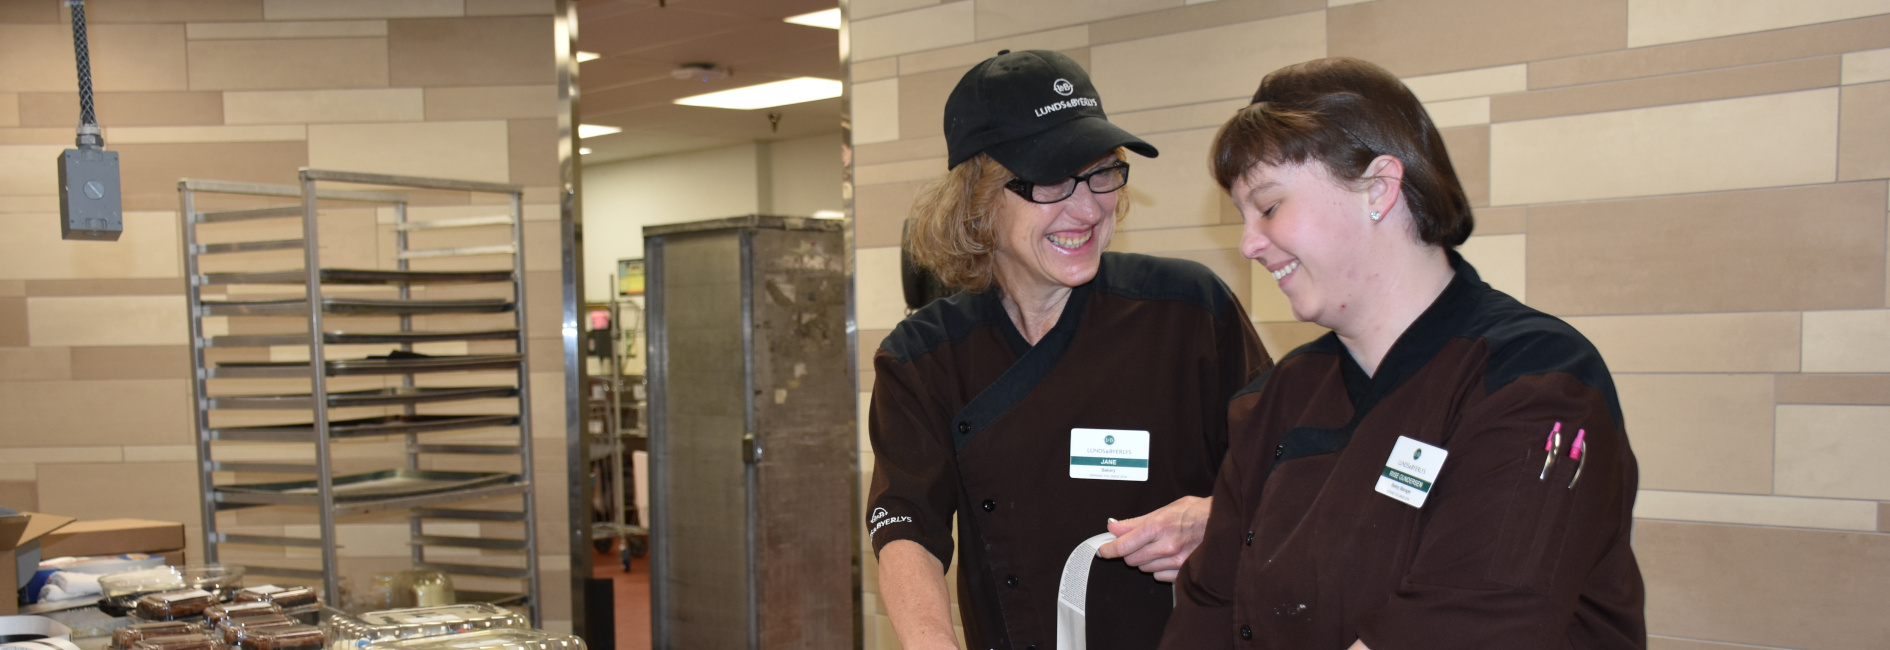 Local 663 Jane Moodie with Bakery Manager Riise Gundersen Local 22 LB Eden Prairie PT Mod healthcare slider crop.JPG